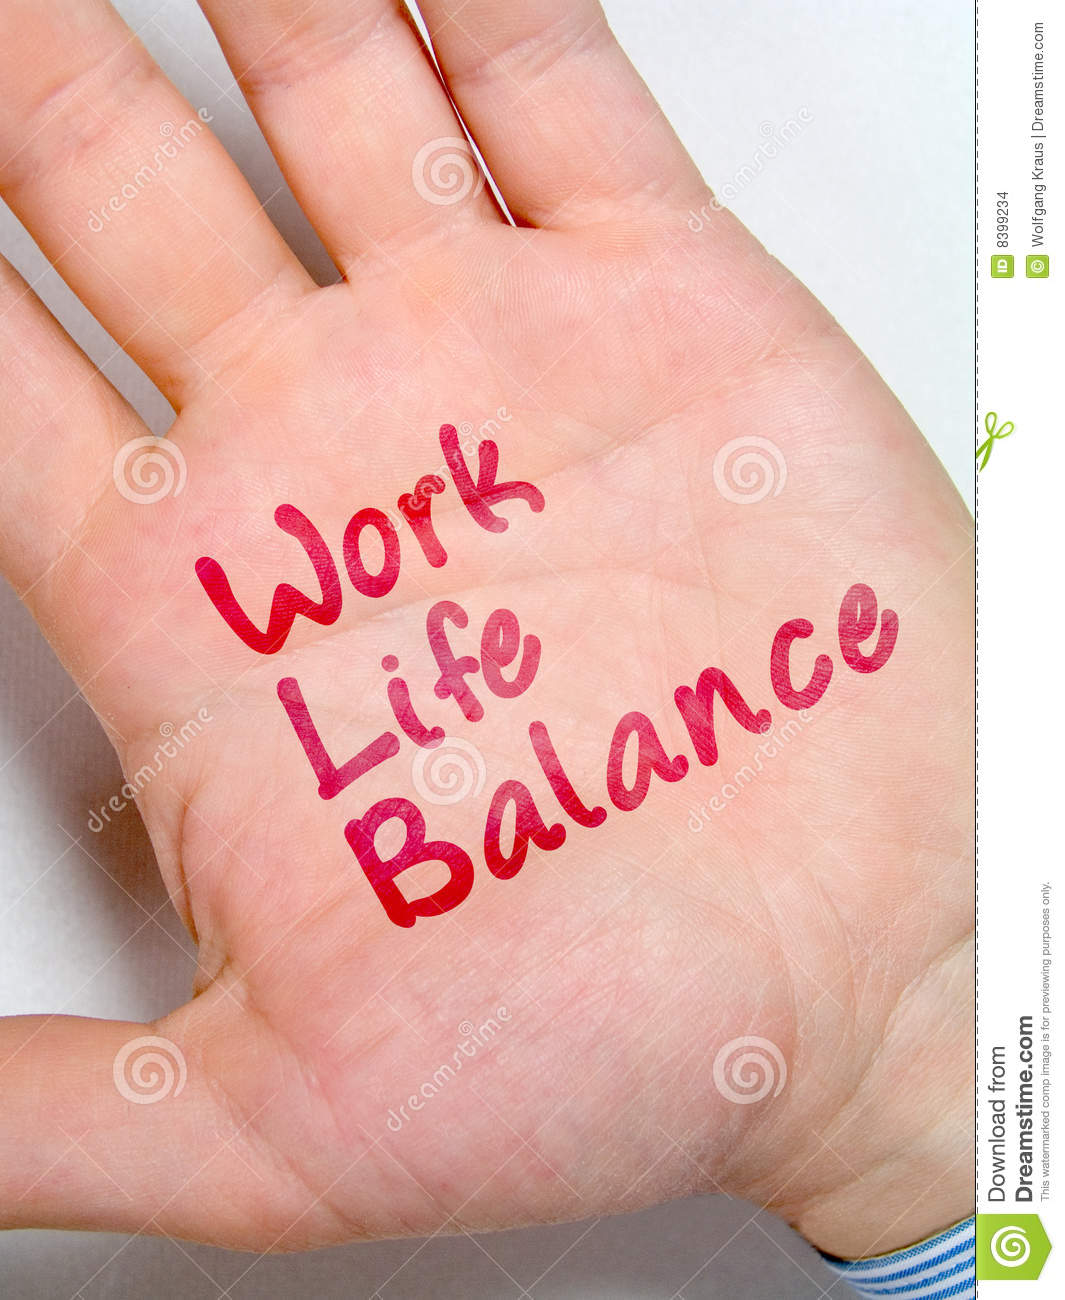 Overworked & Stressed Out? 5 Ways To Balance Work & Life